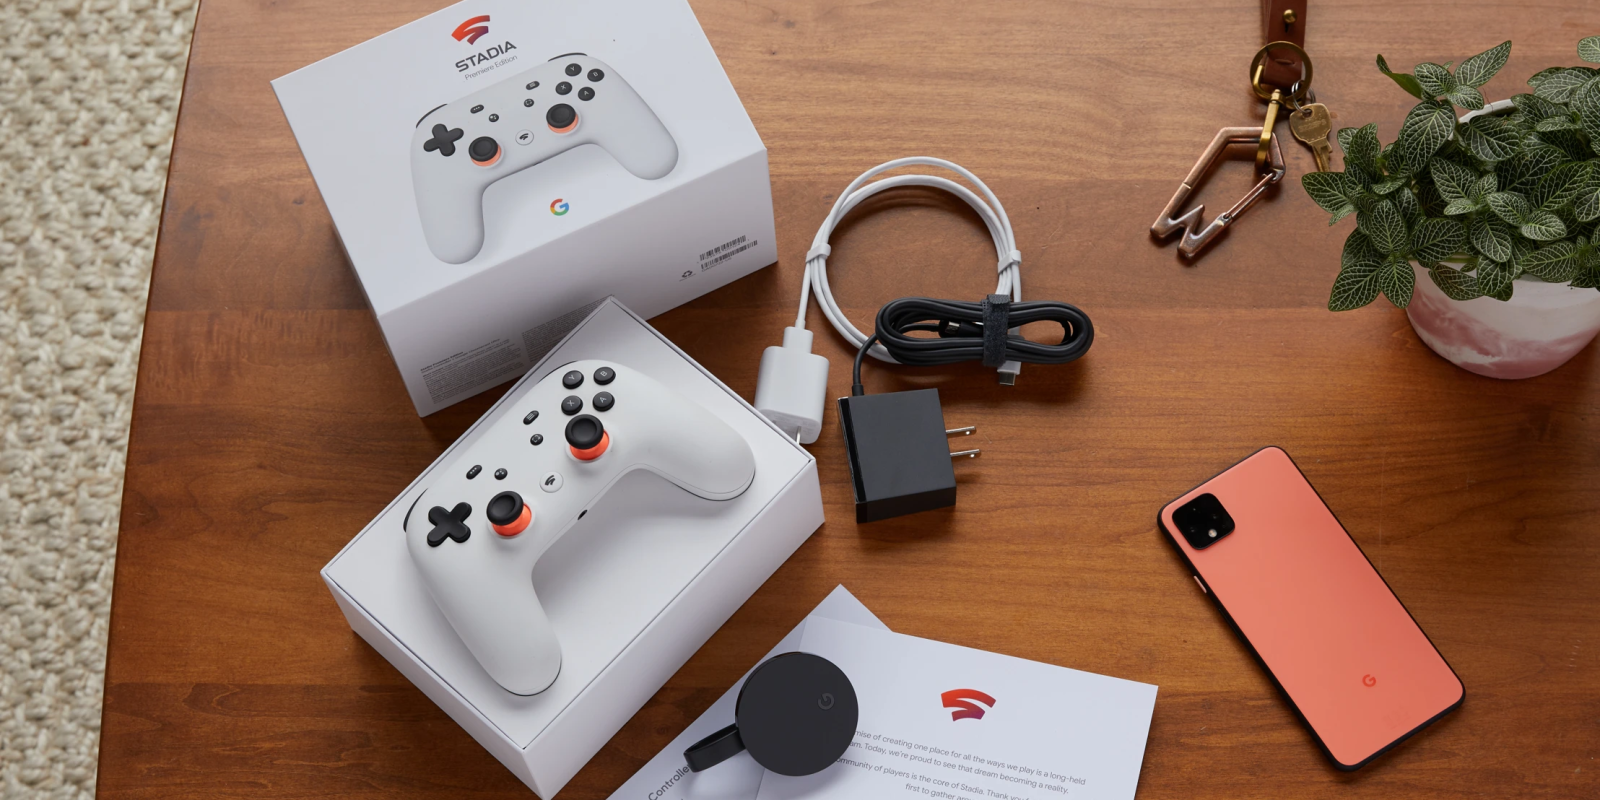 [Update: Video] A Google Stadia team member will personally deliver a Founder's kit on launch day